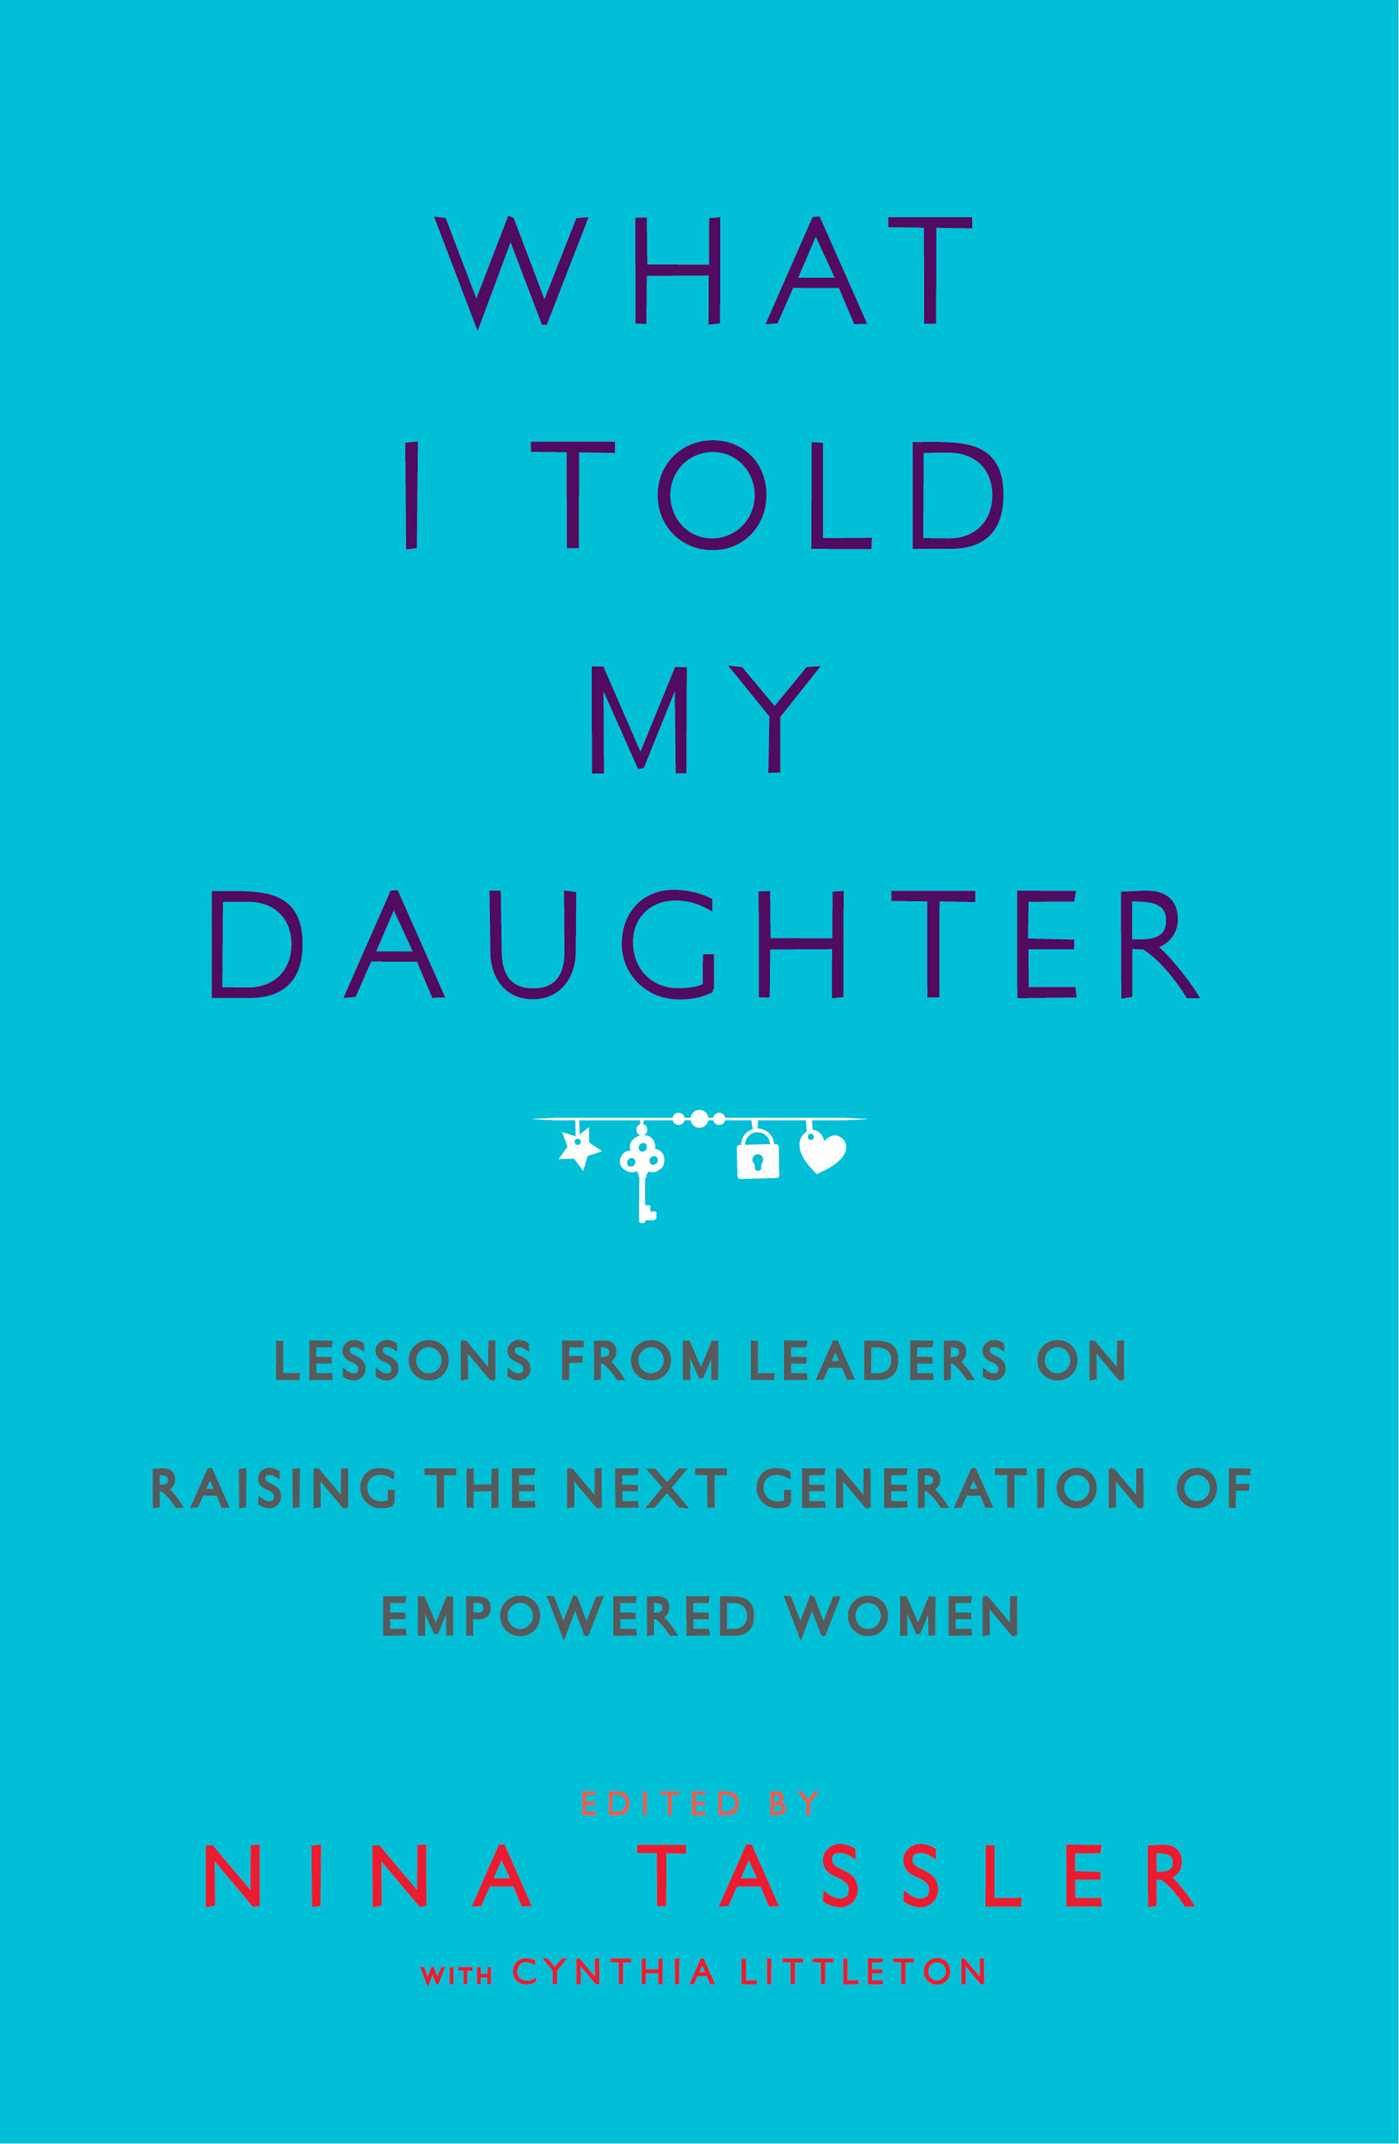 Easy Essay Outline Lessons From Leaders On Raising The Next Generation Of Empowered Women Environmental Essays also What Is Communication Essay What I Told My Daughter  Book By Nina Tassler Cynthia Littleton  Essay On Importance Of Trees